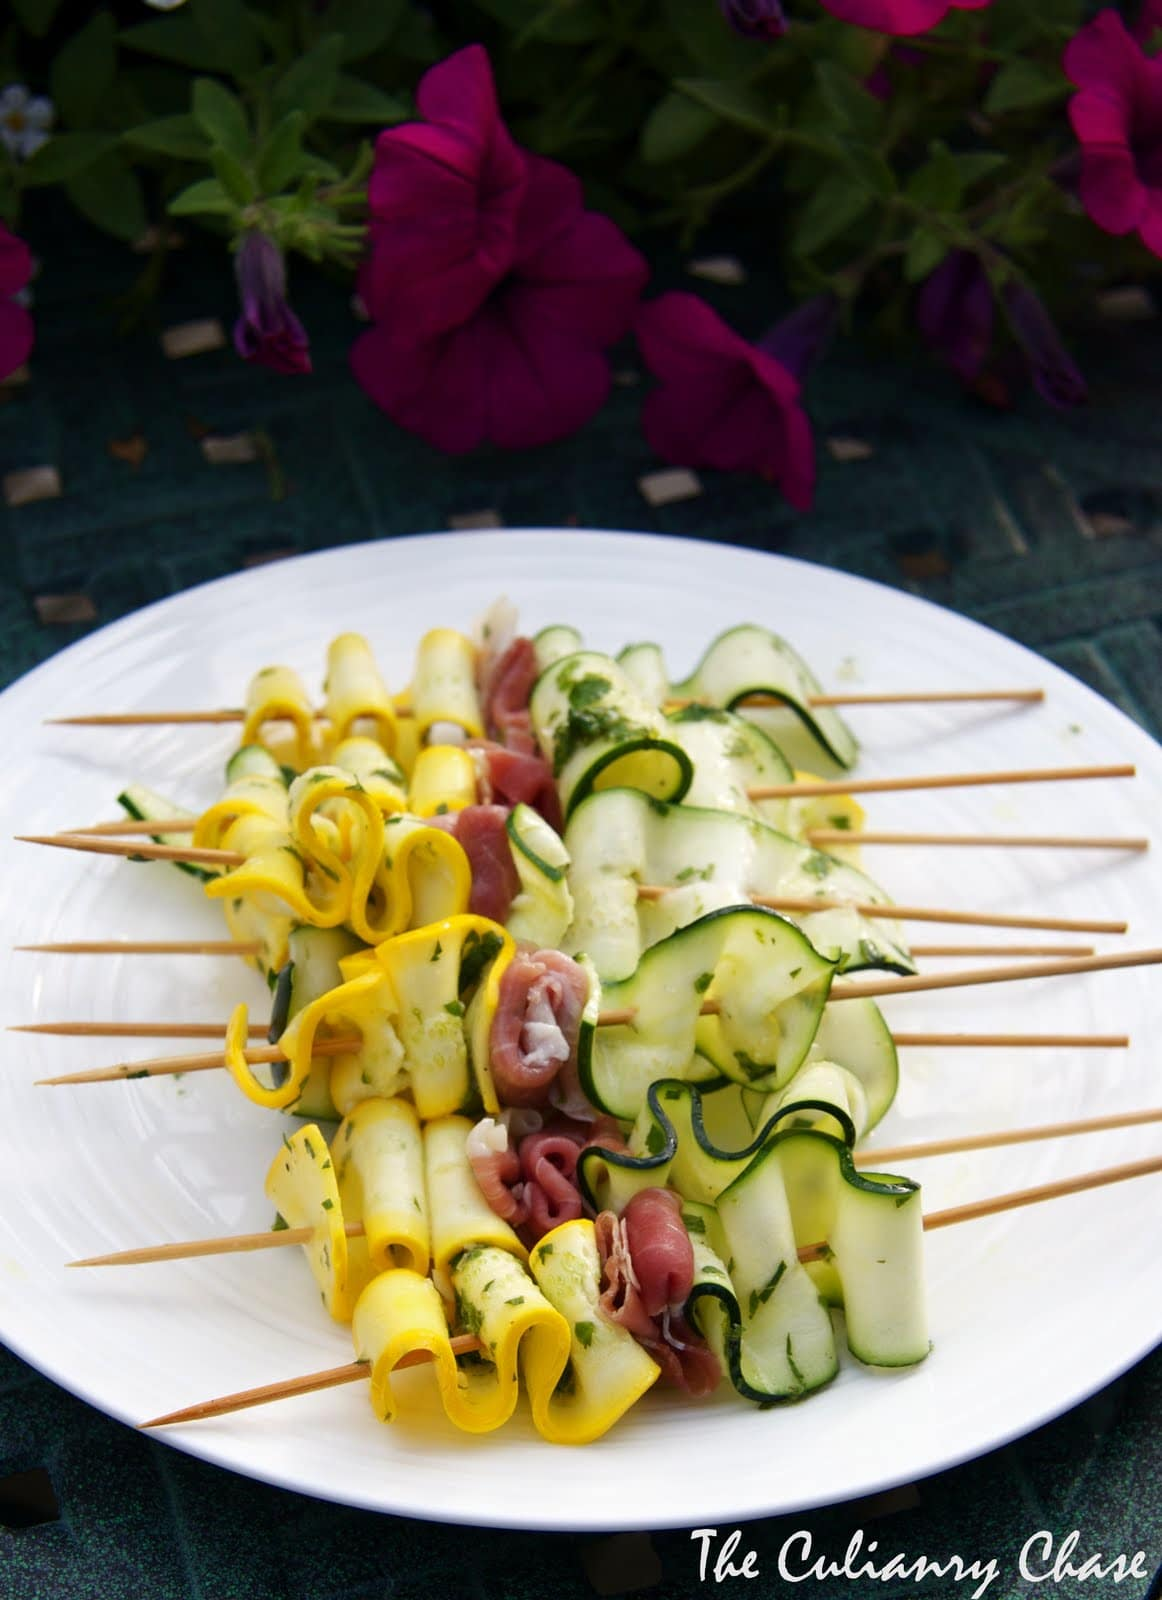 Discussion on this topic: Zucchini Ribbons with Mint, zucchini-ribbons-with-mint/